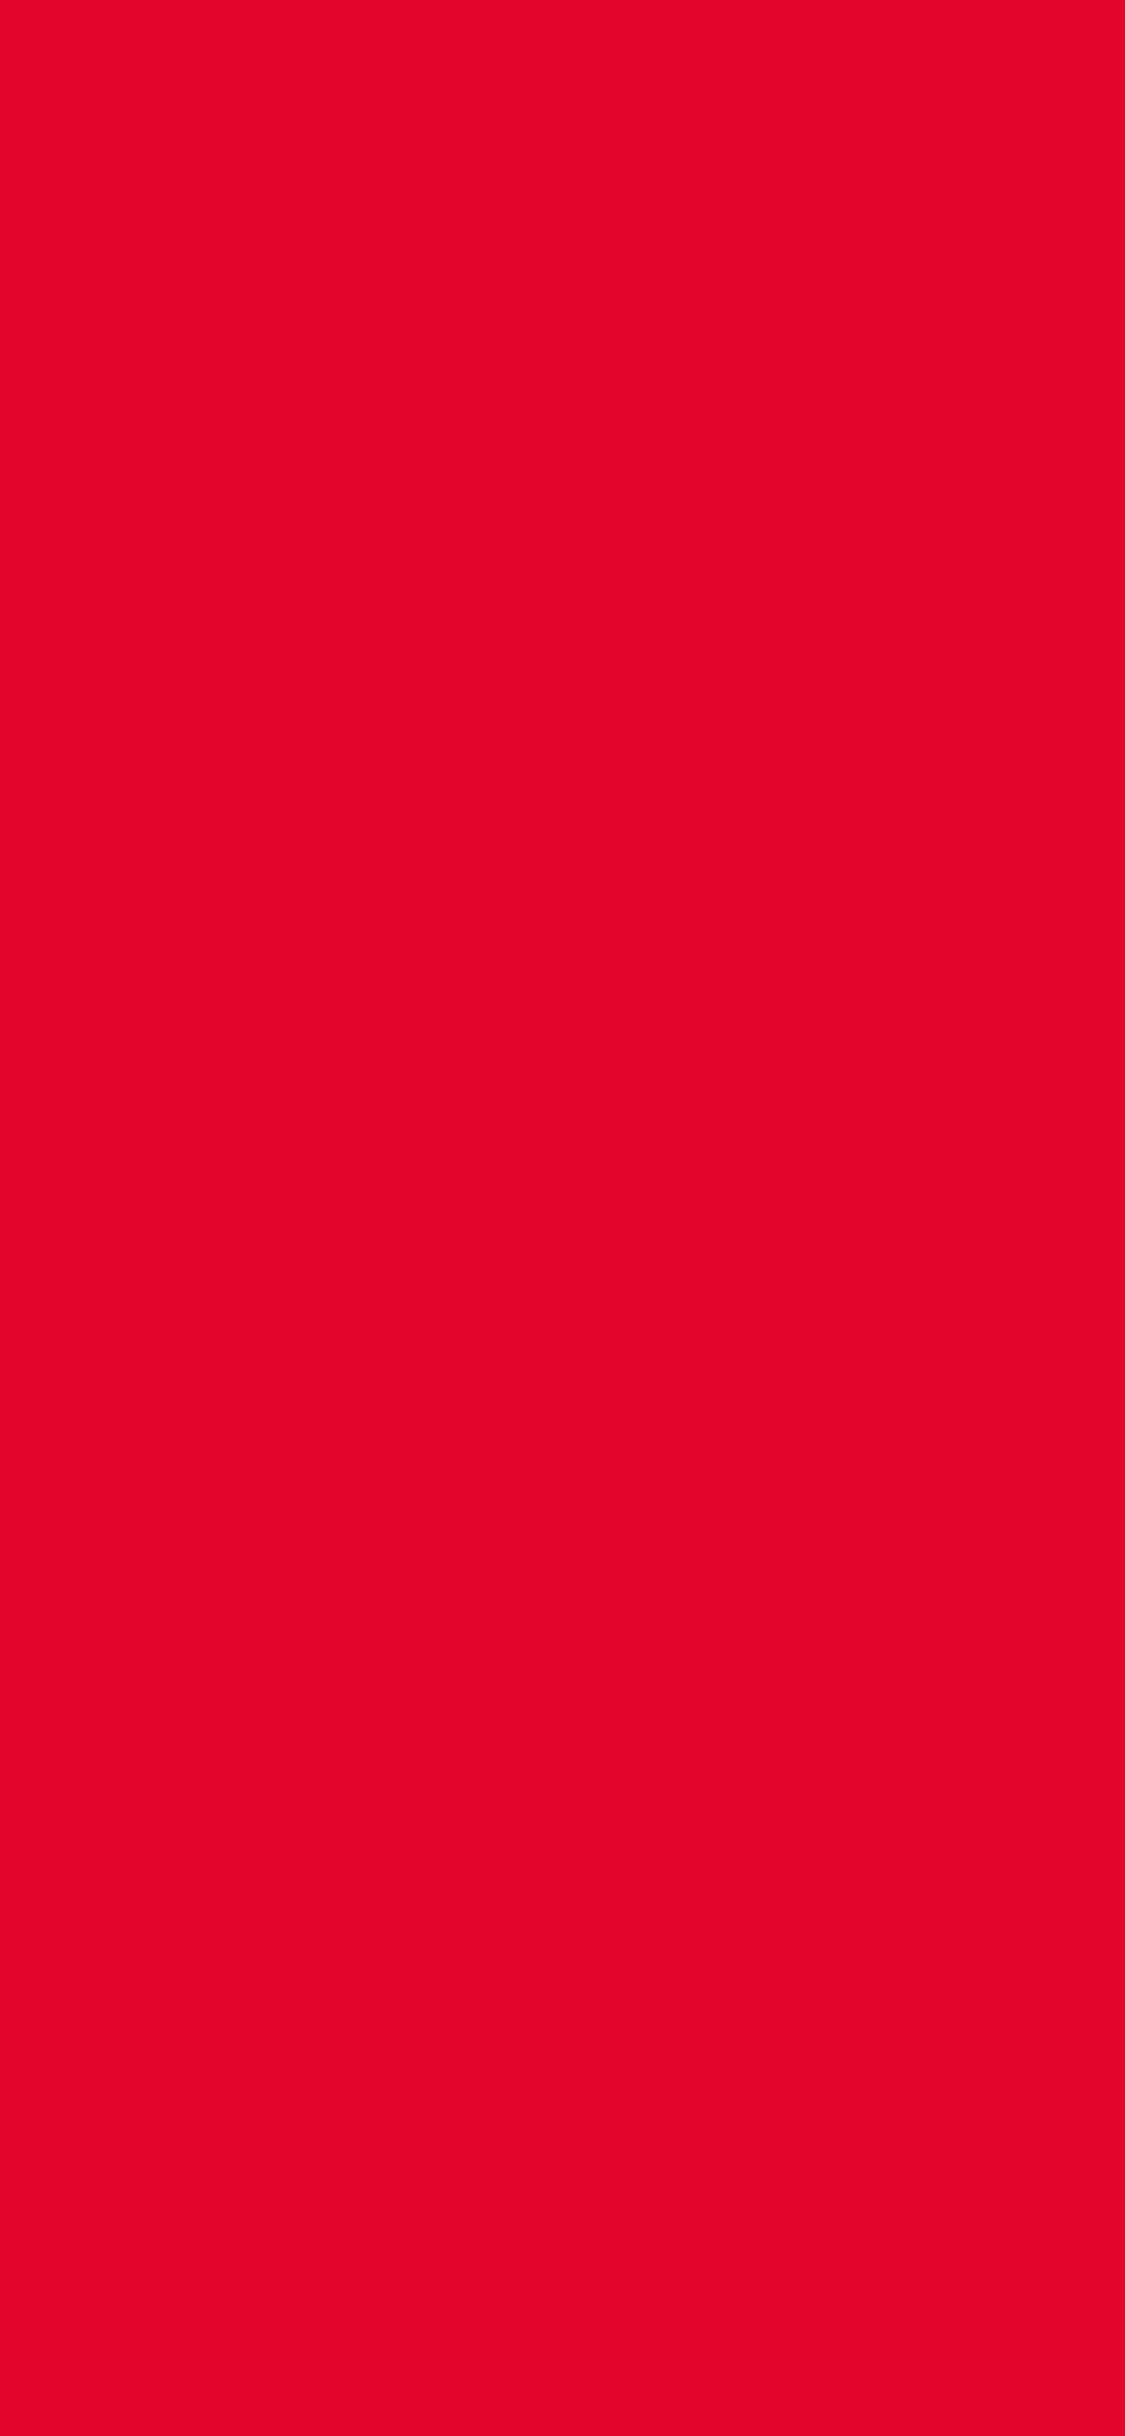 1125x2436 Medium Candy Apple Red Solid Color Background